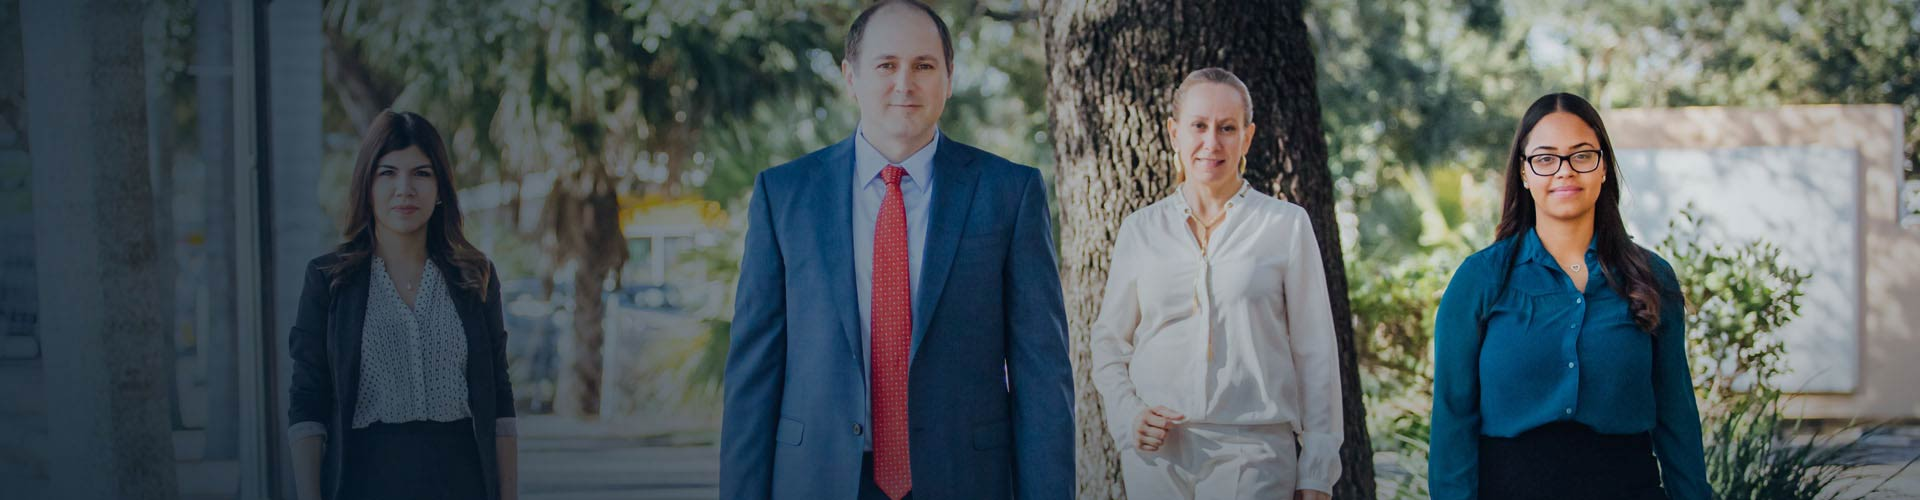 Coral Springs Chapter 7 Bankruptcy Attorneys Near Me - Stiberman Law Firm